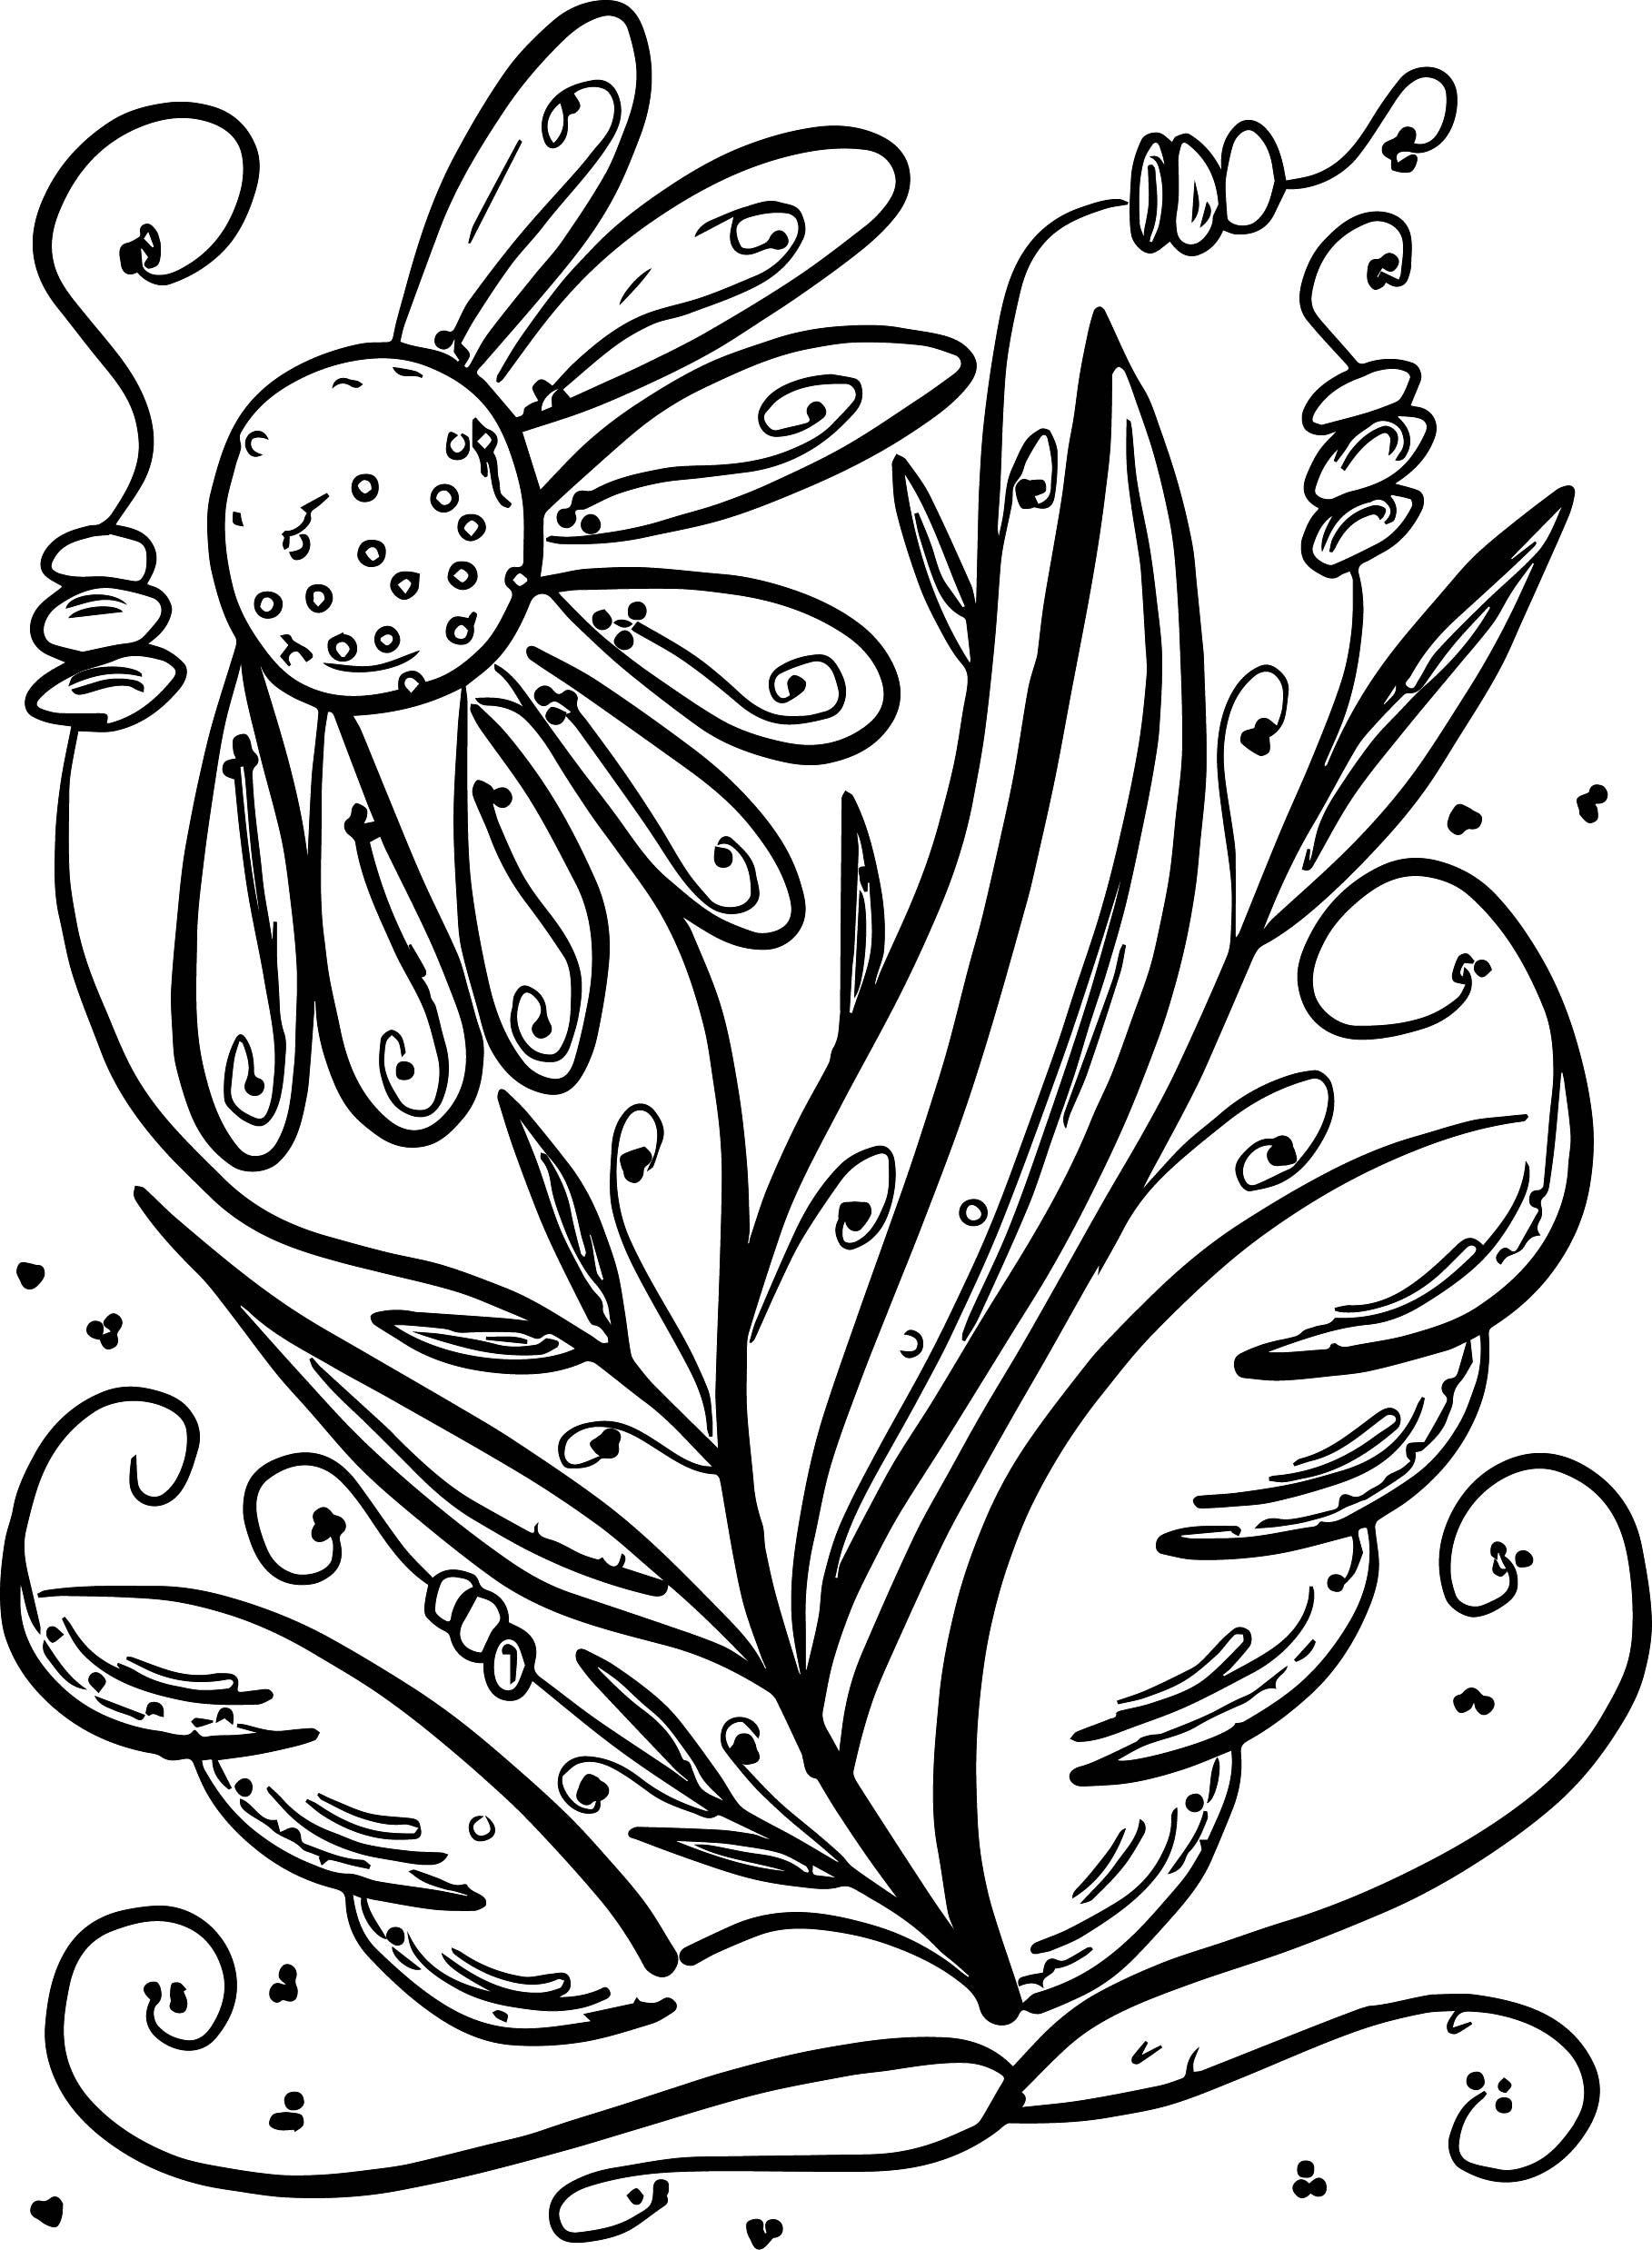 Floral Summer Flower Coloring Page | Wecoloringpage